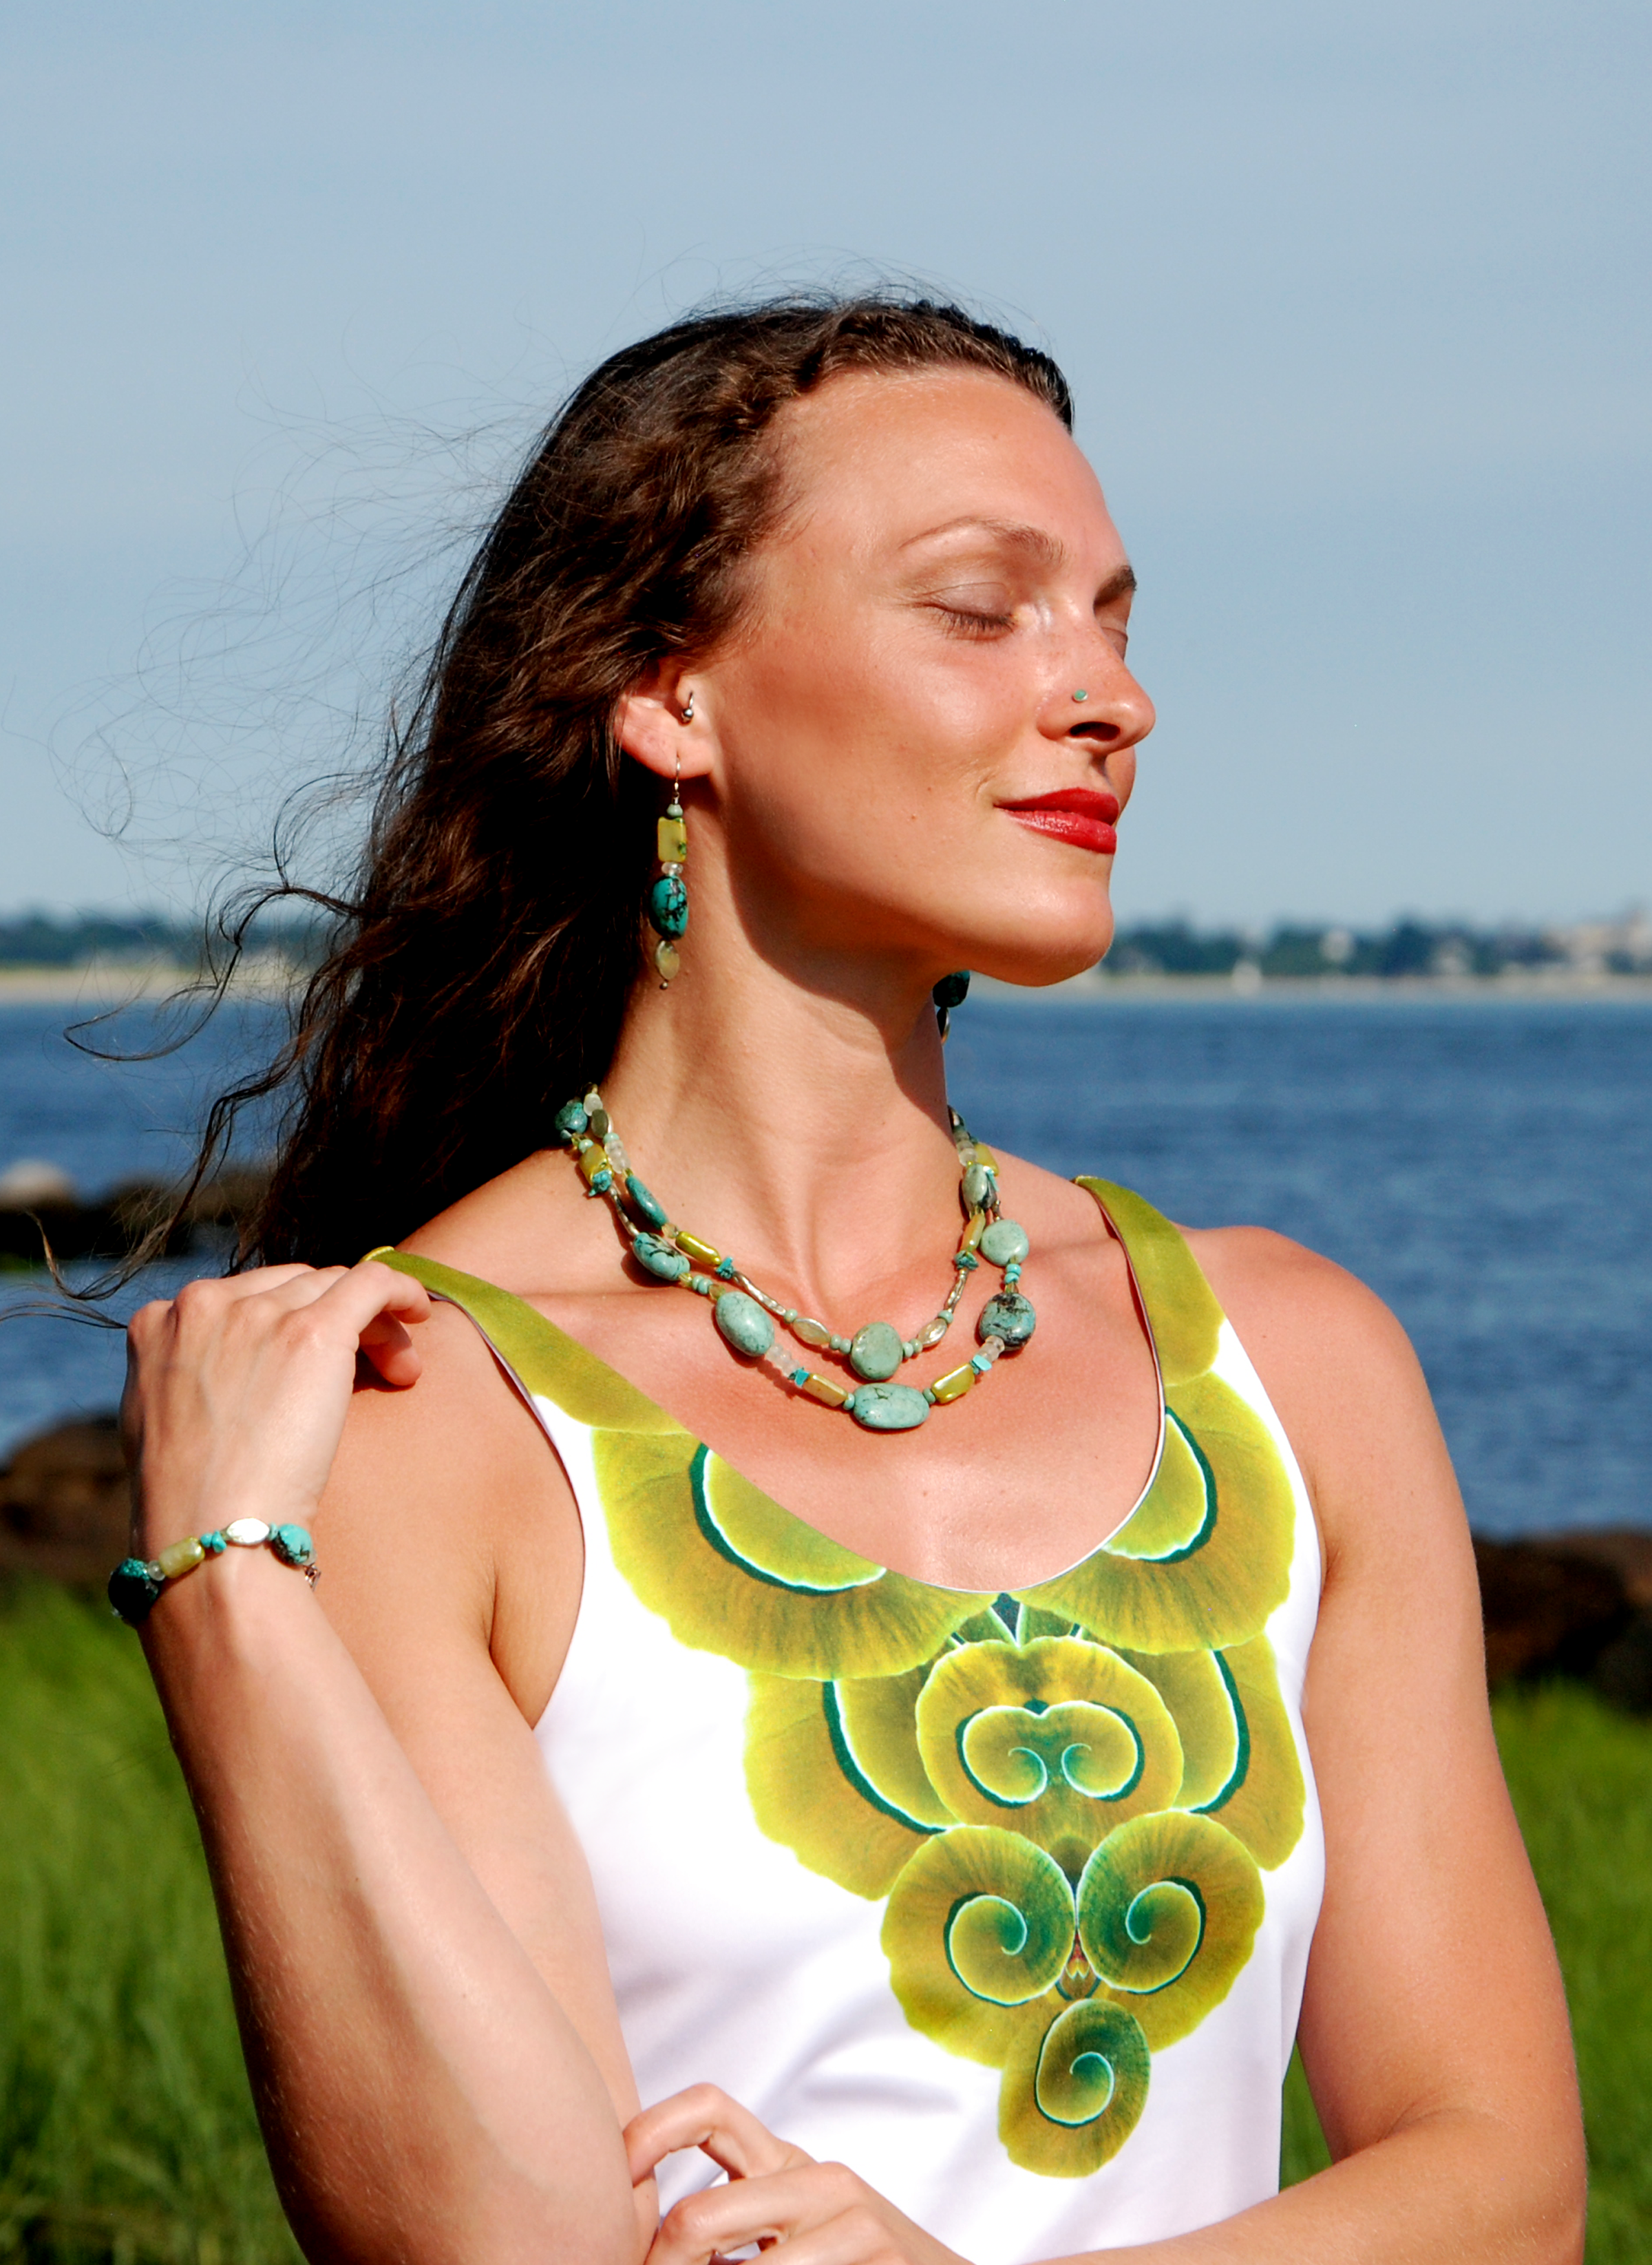 tiwia dive deep emily spiral coral scoop neck necklace earrings bracelet 1 gallery shots.png